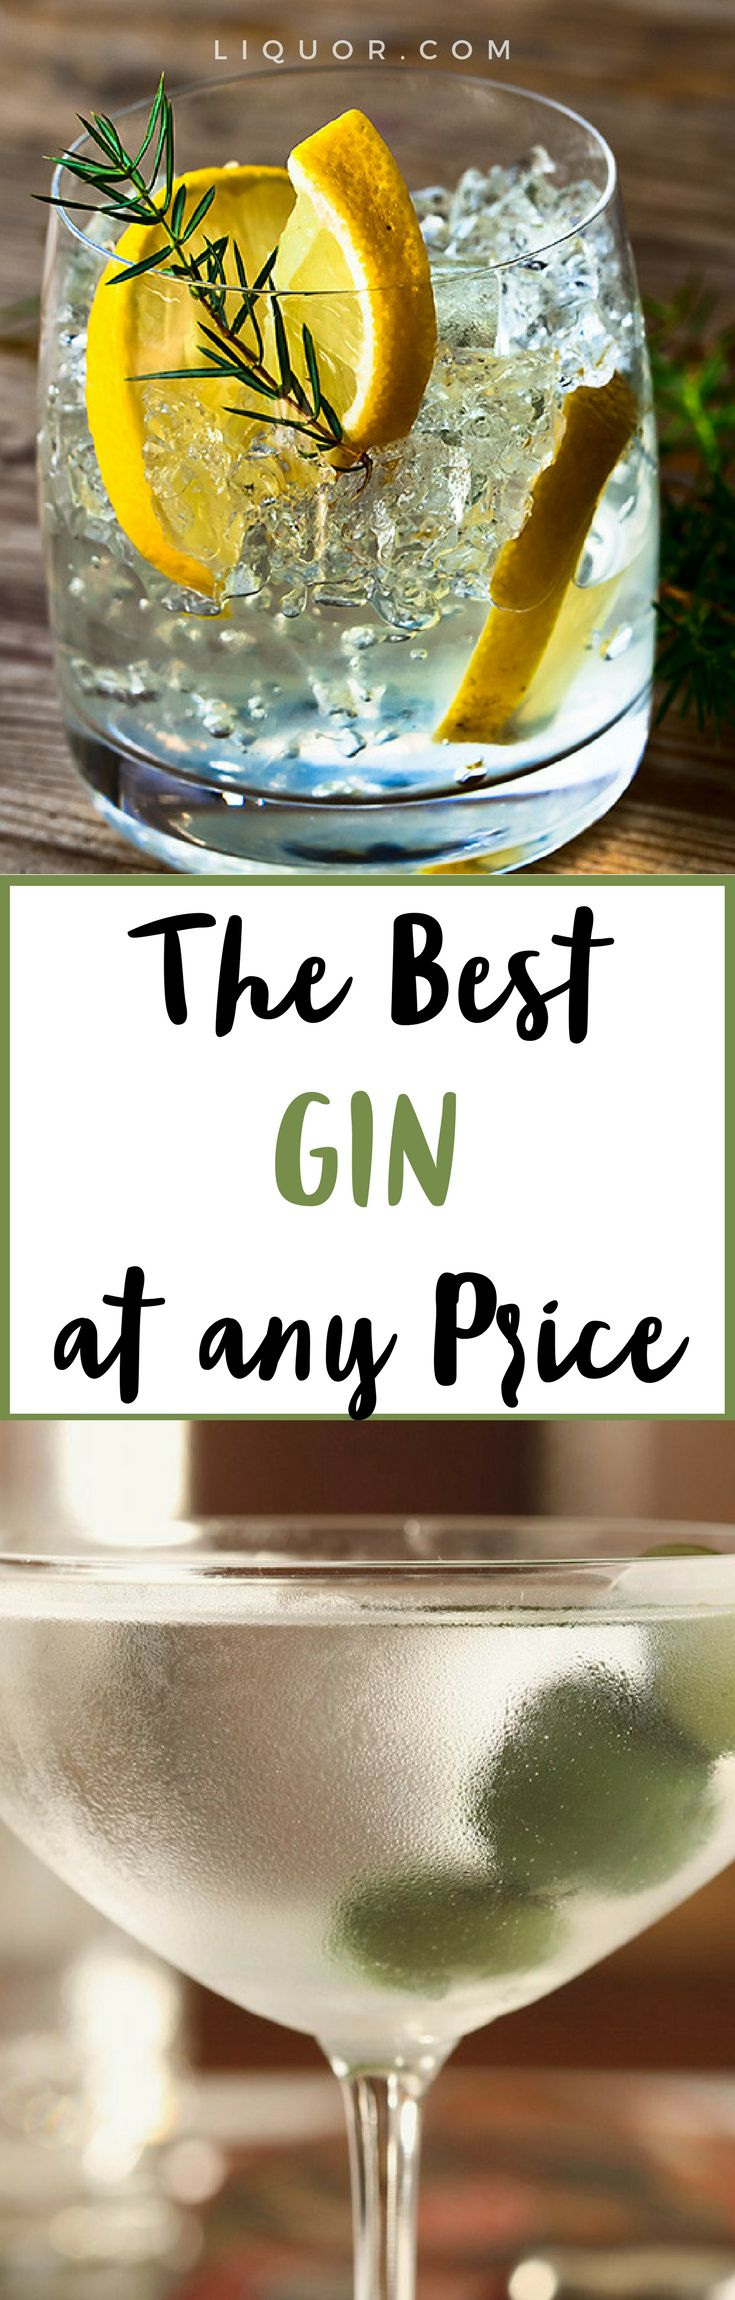 We had our expert bartenders pick their favorite #gin at any price. You're going to want to know these.